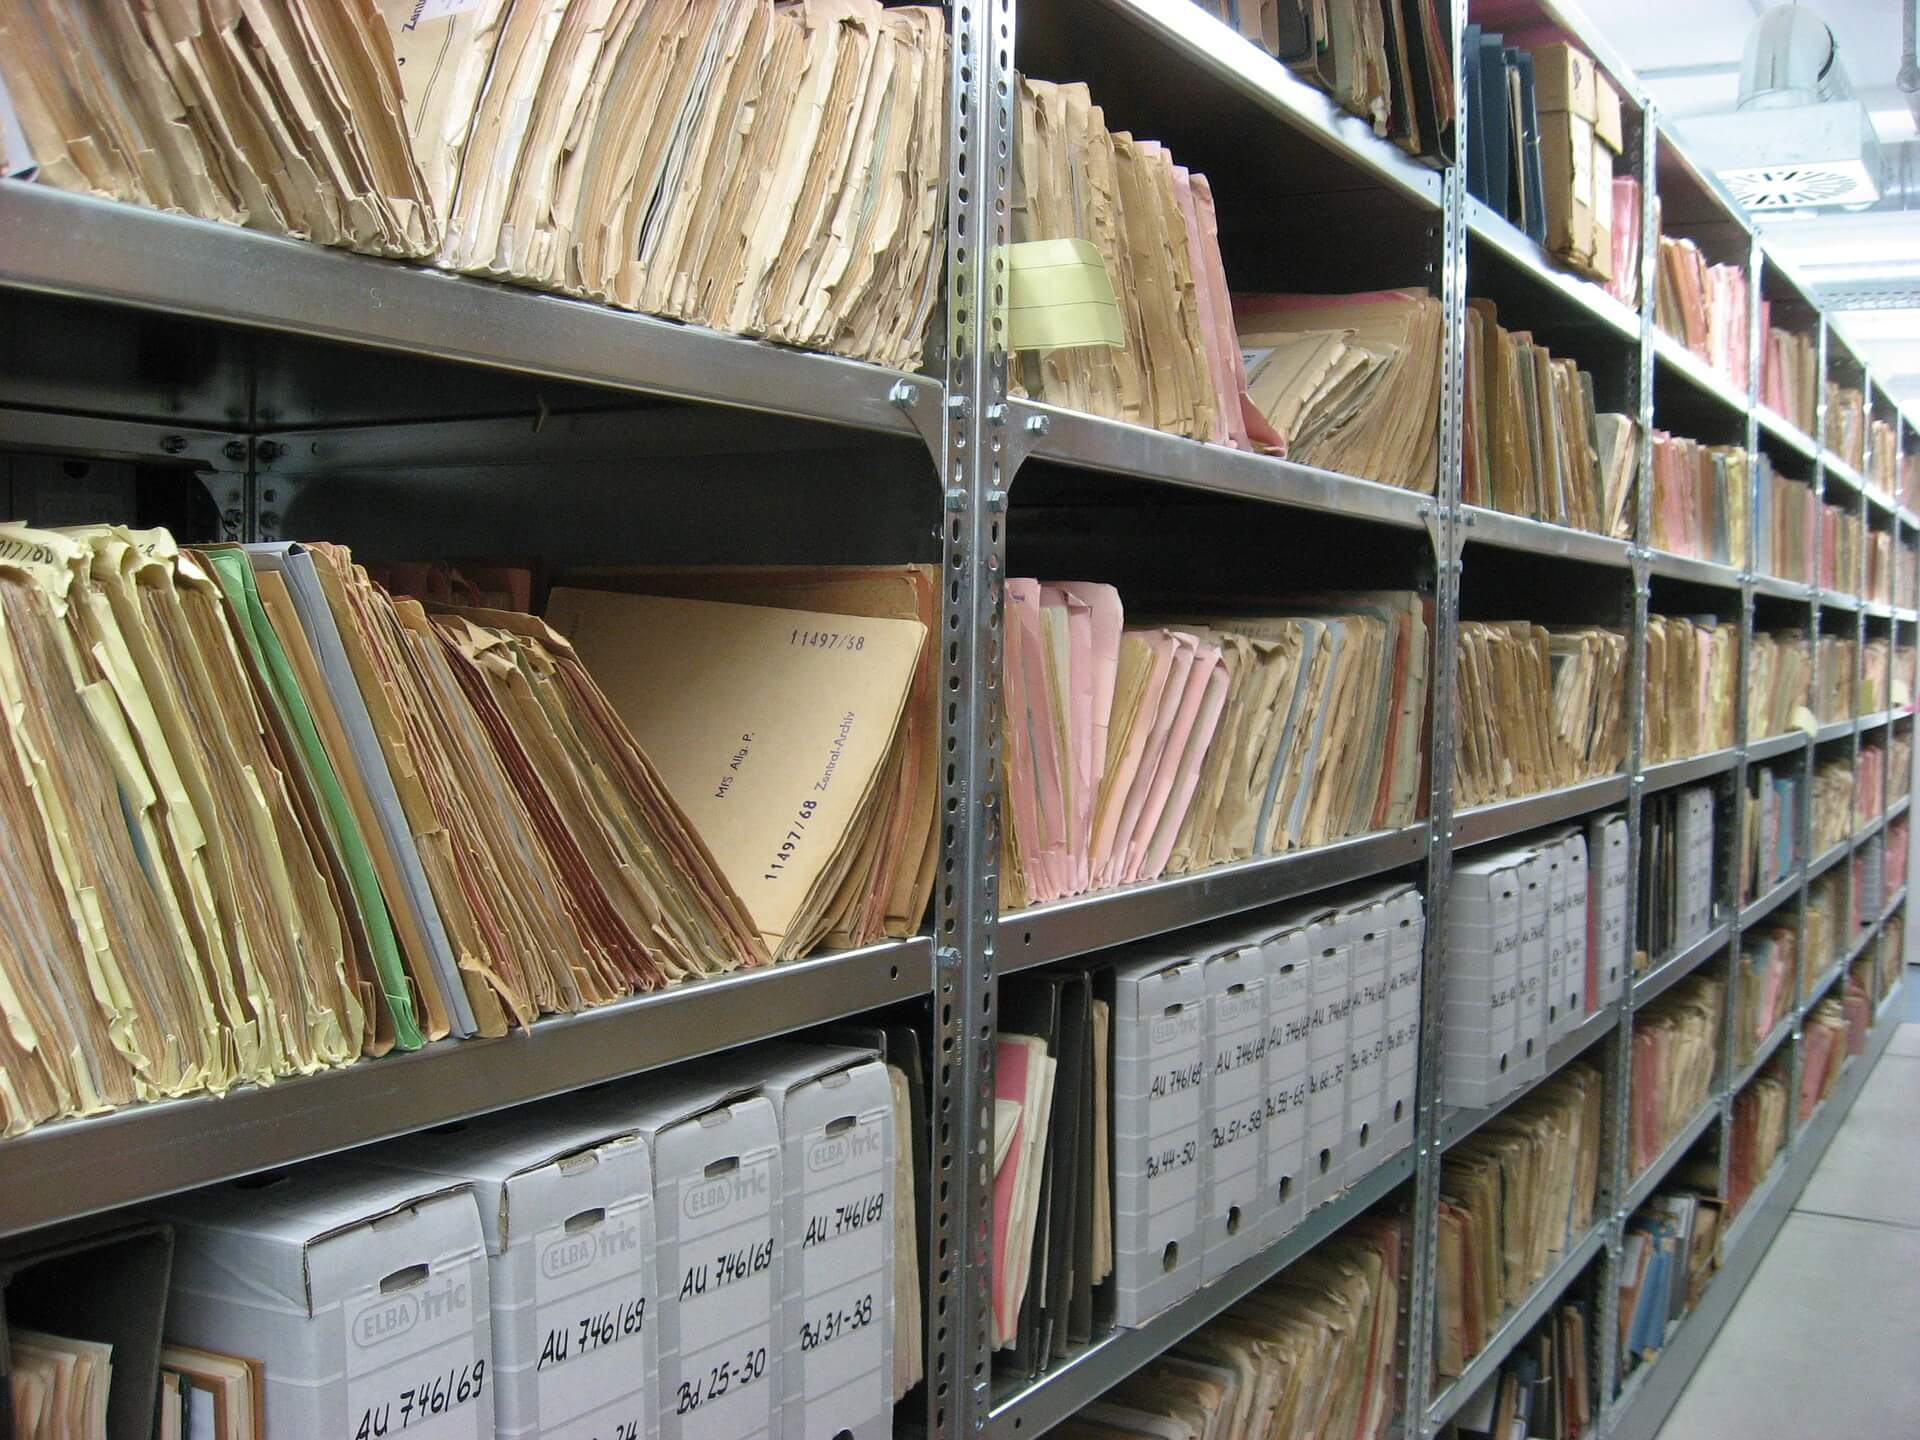 How to Get Control of Your Invoice Archives: It's Not Too Late